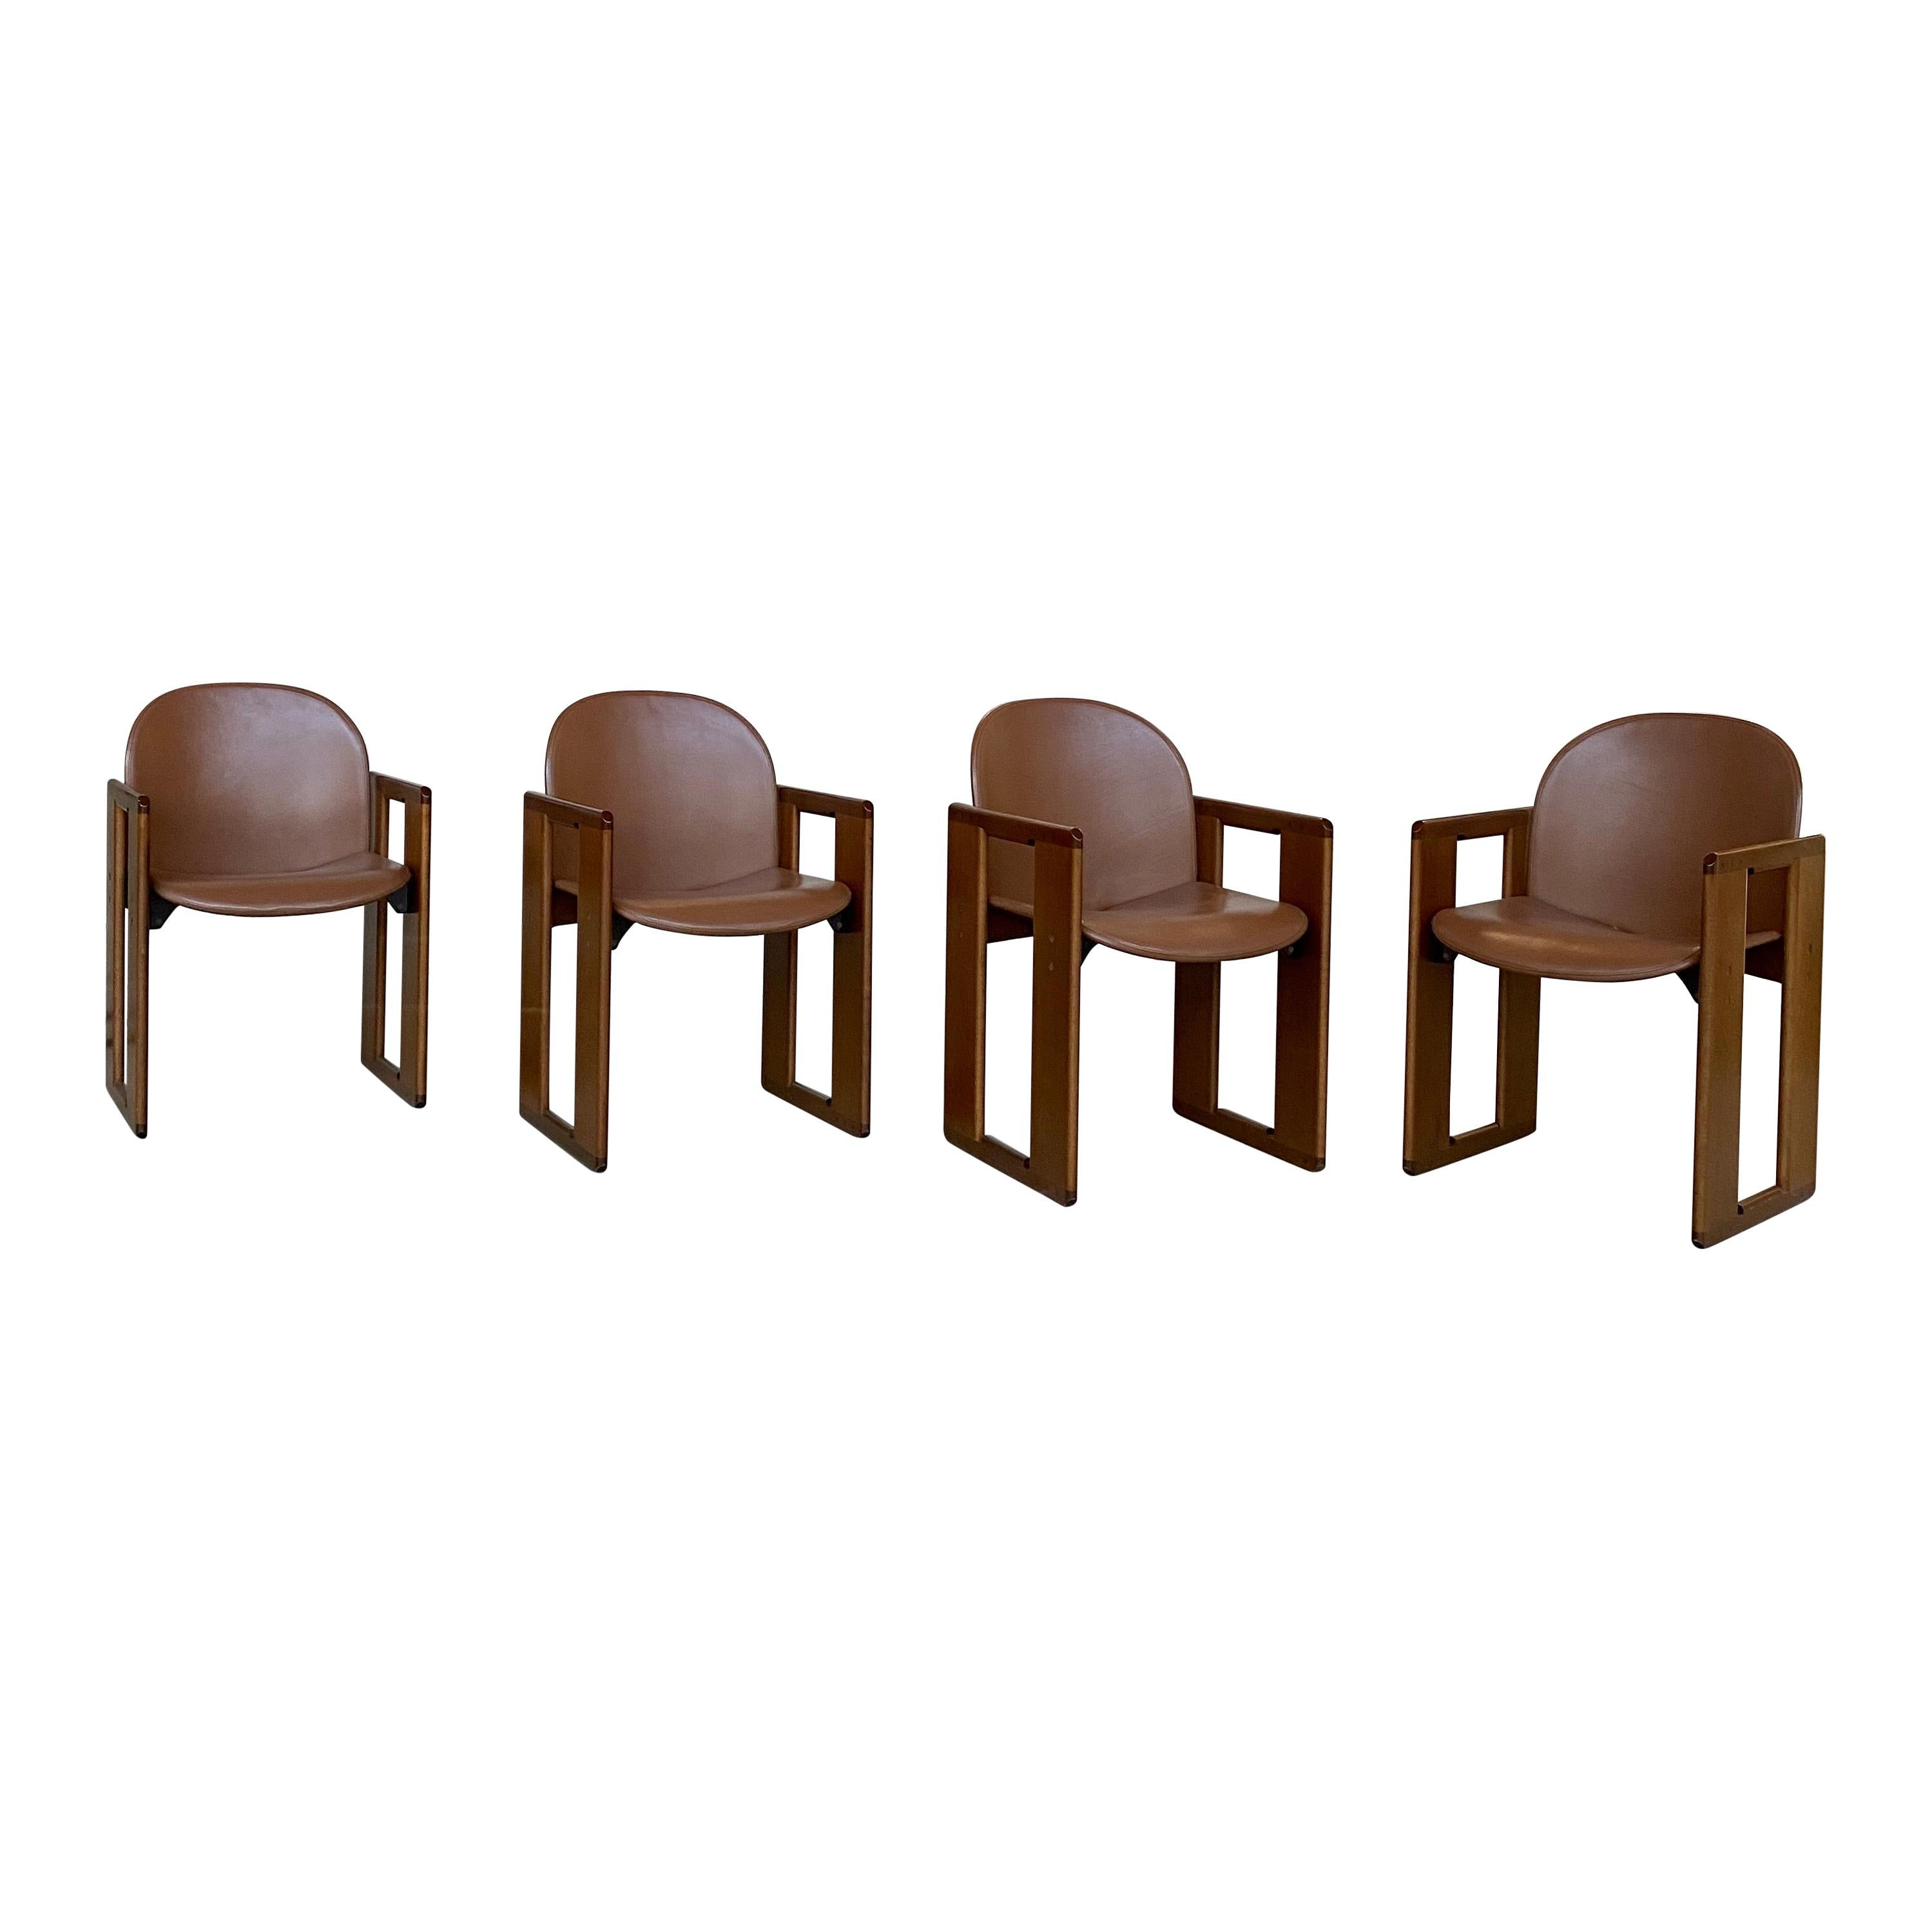 "Afra & Tobia Scarpa ""Dialogo"" Dining Chairs for B&B Italia, 1974, Set of 4"